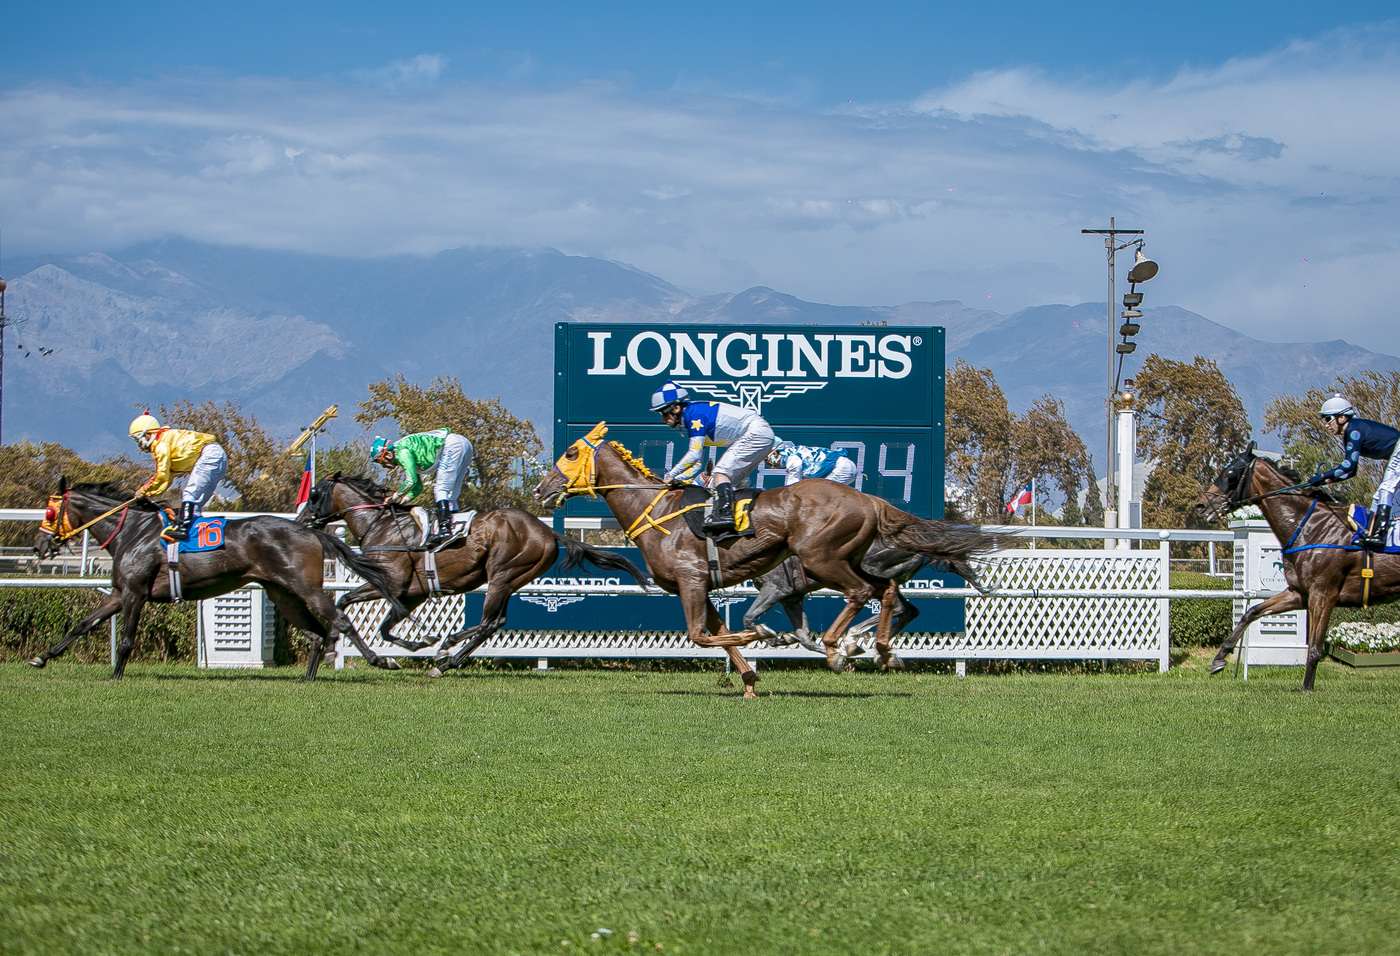 Longines Flat Racing Event: Ya Primo reigned supreme at the 2019 Longines Gran Premio Latinoamericano  6